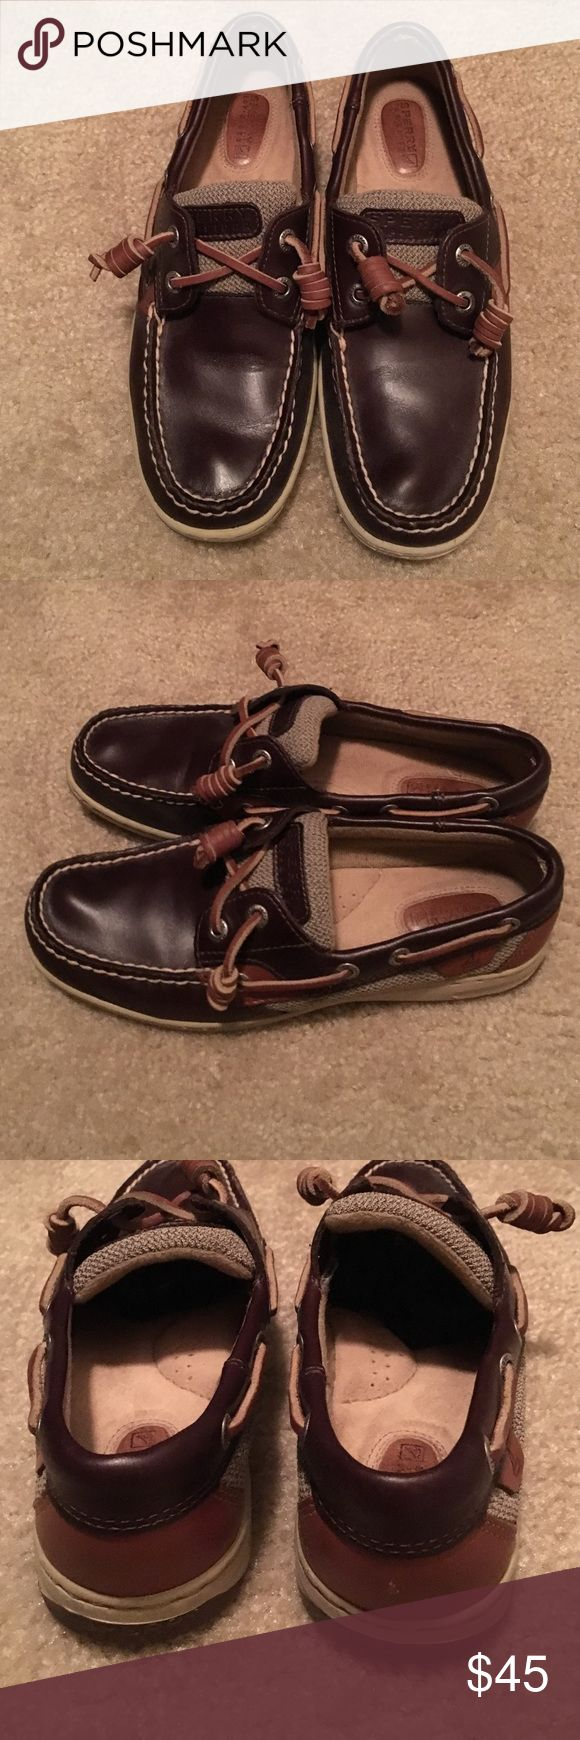 Dark brown Sperry boat shoes Sperrys dark brown boat shoes. Only worn a few times Sperry Top-Sider Shoes Flats & Loafers